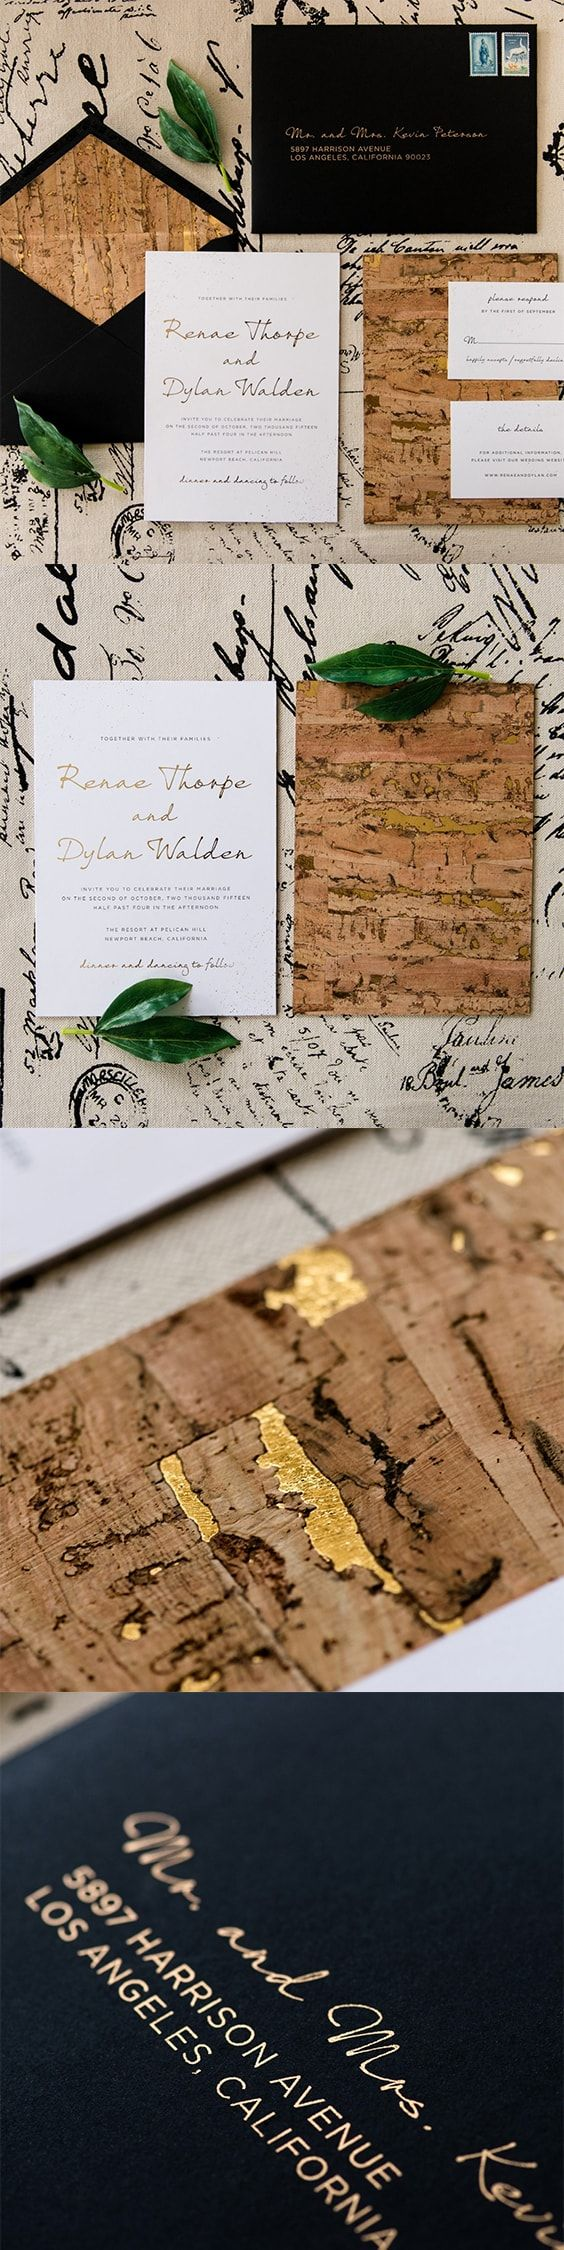 Gold #Foil #wedding #invitation by @engagingpapers. Celebrate your most inviting day with Renae! This oversized invitation will make a grand entrance! This #gold #foil and luxepress printed invitation will leave your guests in awe. Turn the invitation and WOW… backed in cork with gold foil specs!